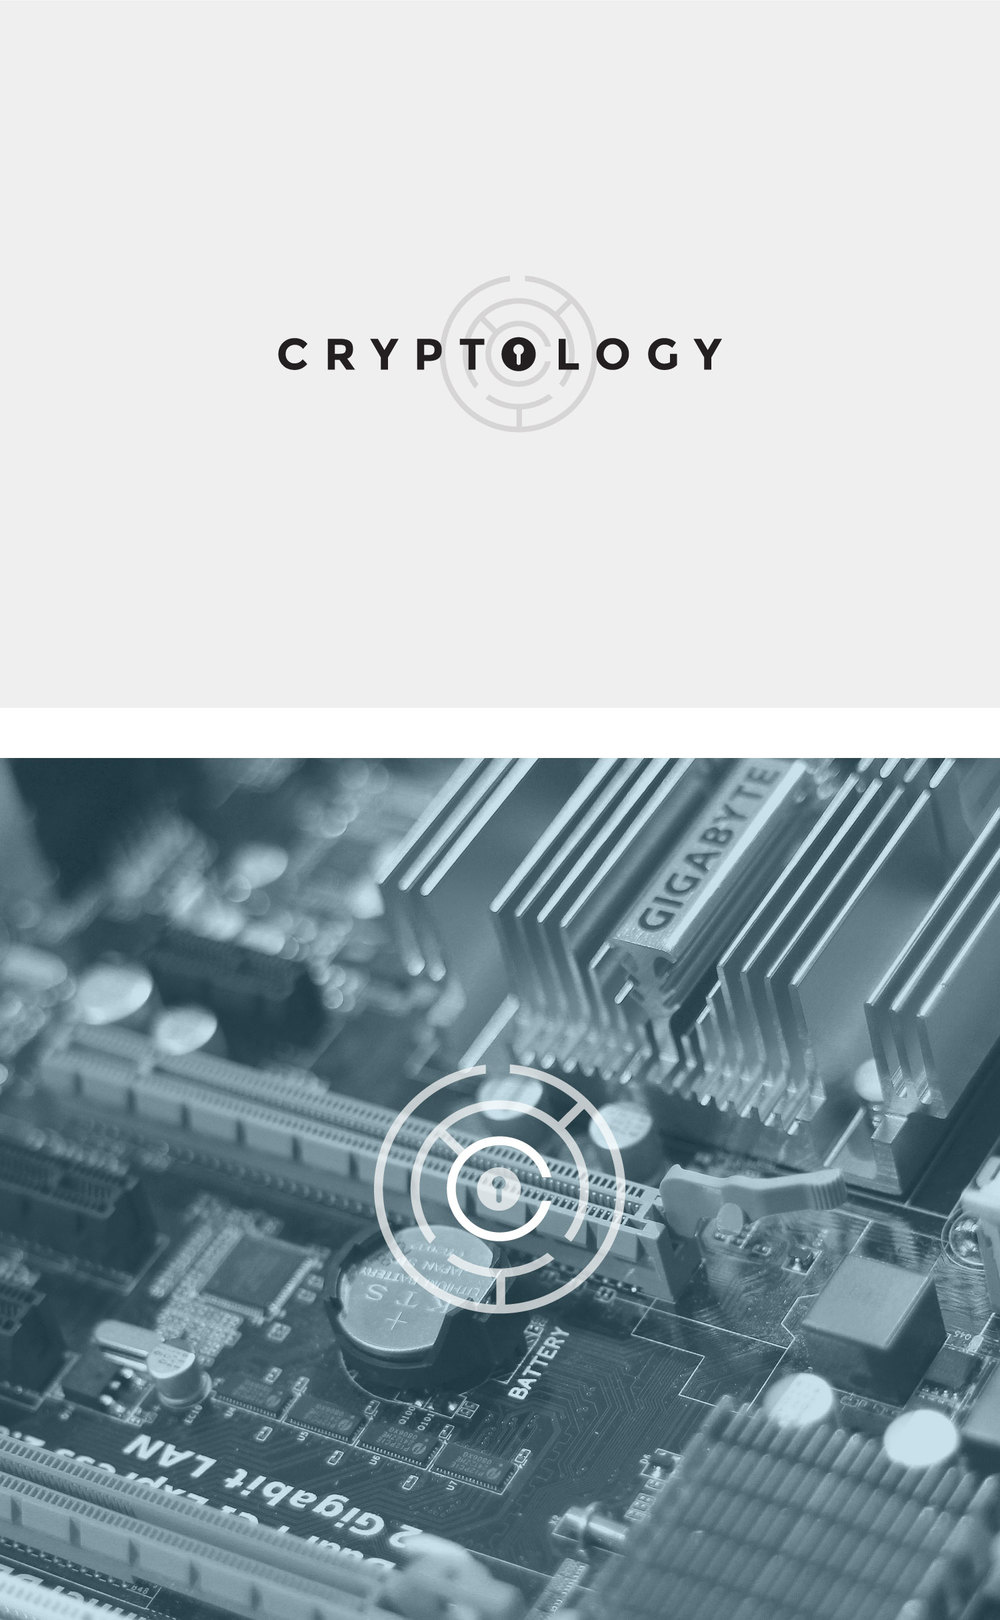 cryptology-logo-options